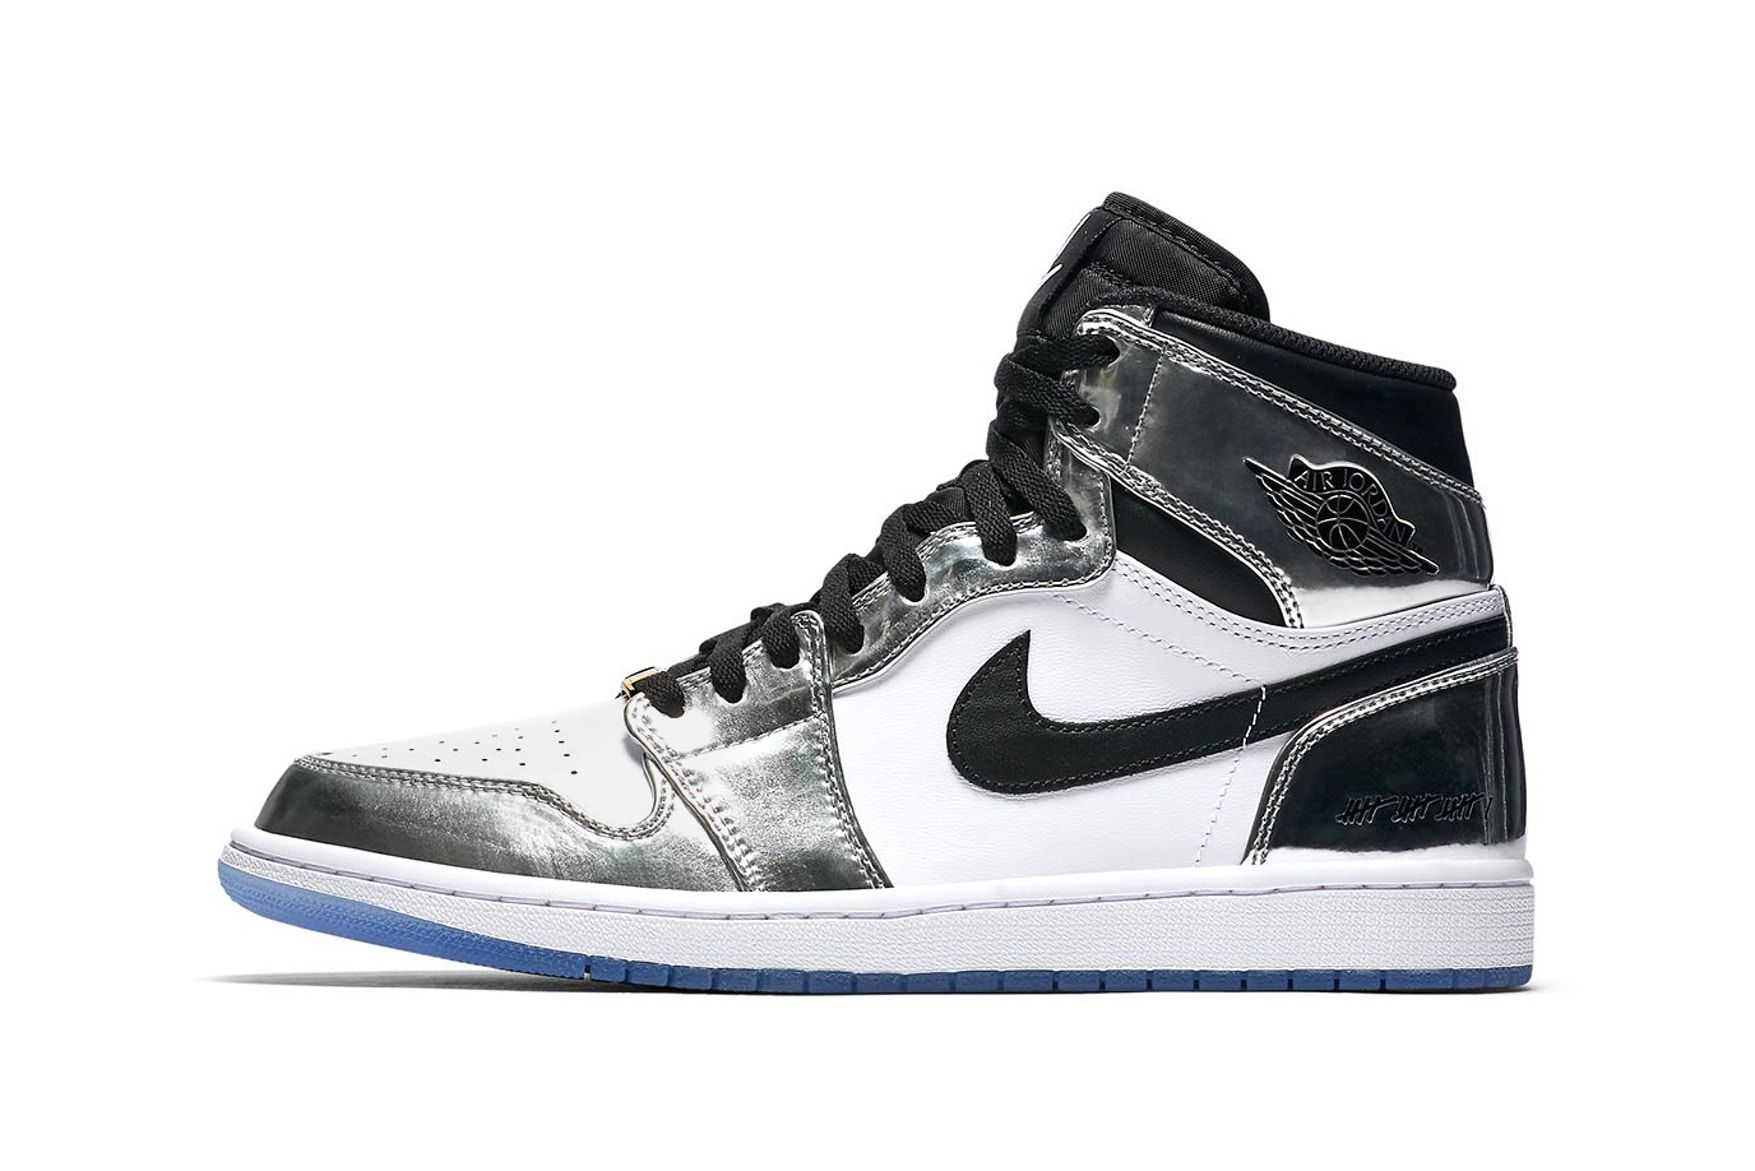 info for 92f65 47cf8 A Closer Look at Kawhi Leonard's Nike Air Jordan 1 Retro ...